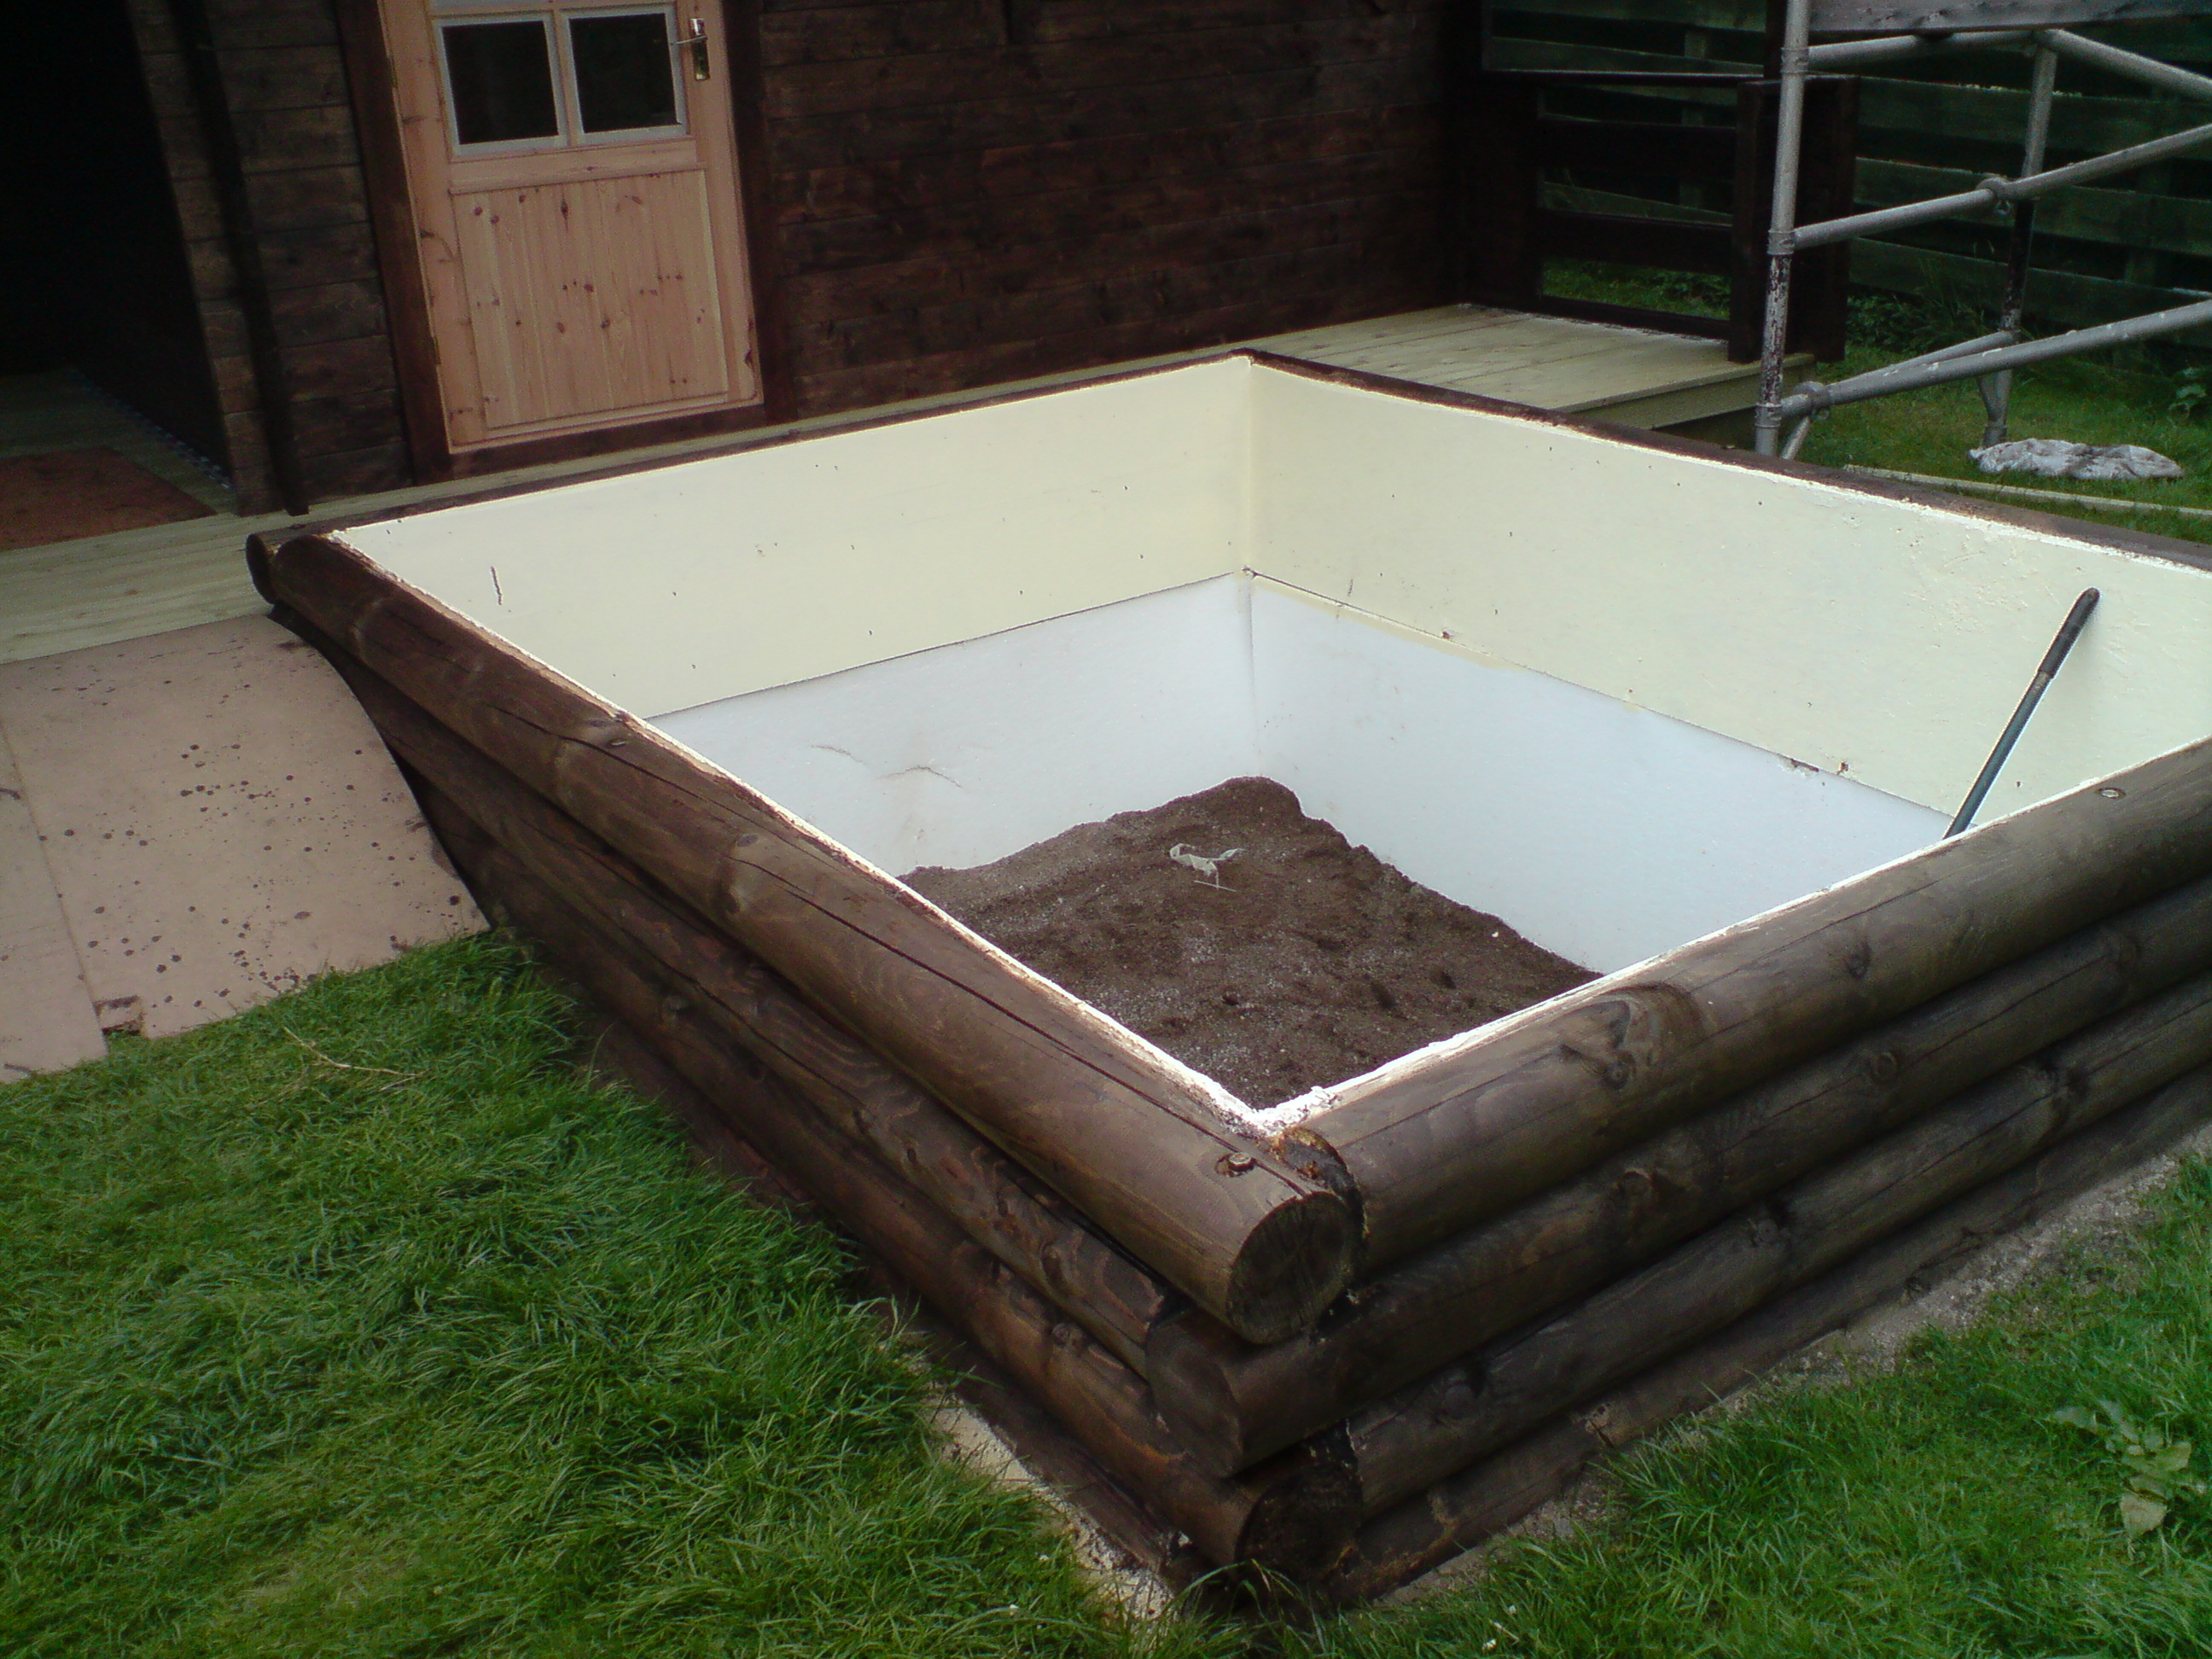 Fishkeeping Pre Constructed Raised Wooden Pond Forums Pond Help And Advice